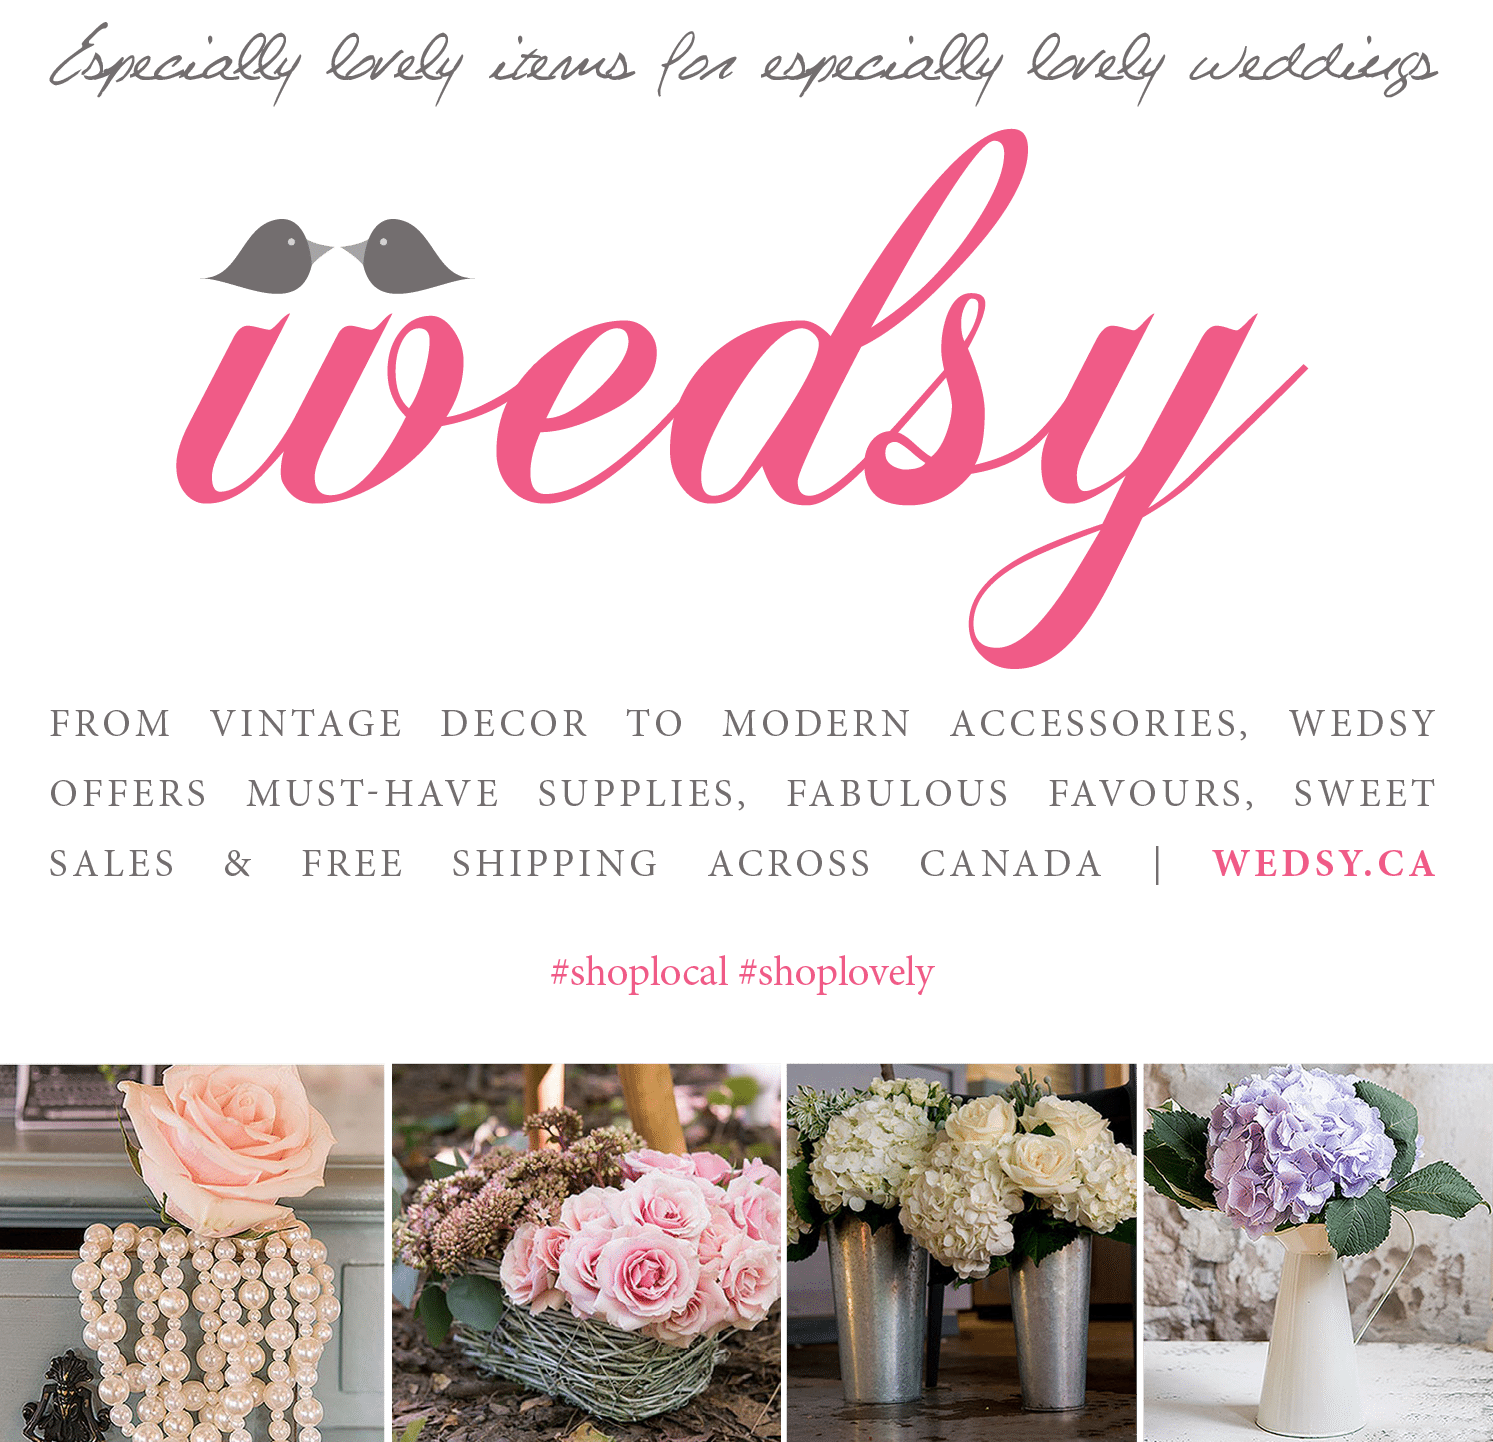 Wedsy.ca Show Specials - On Sale Now